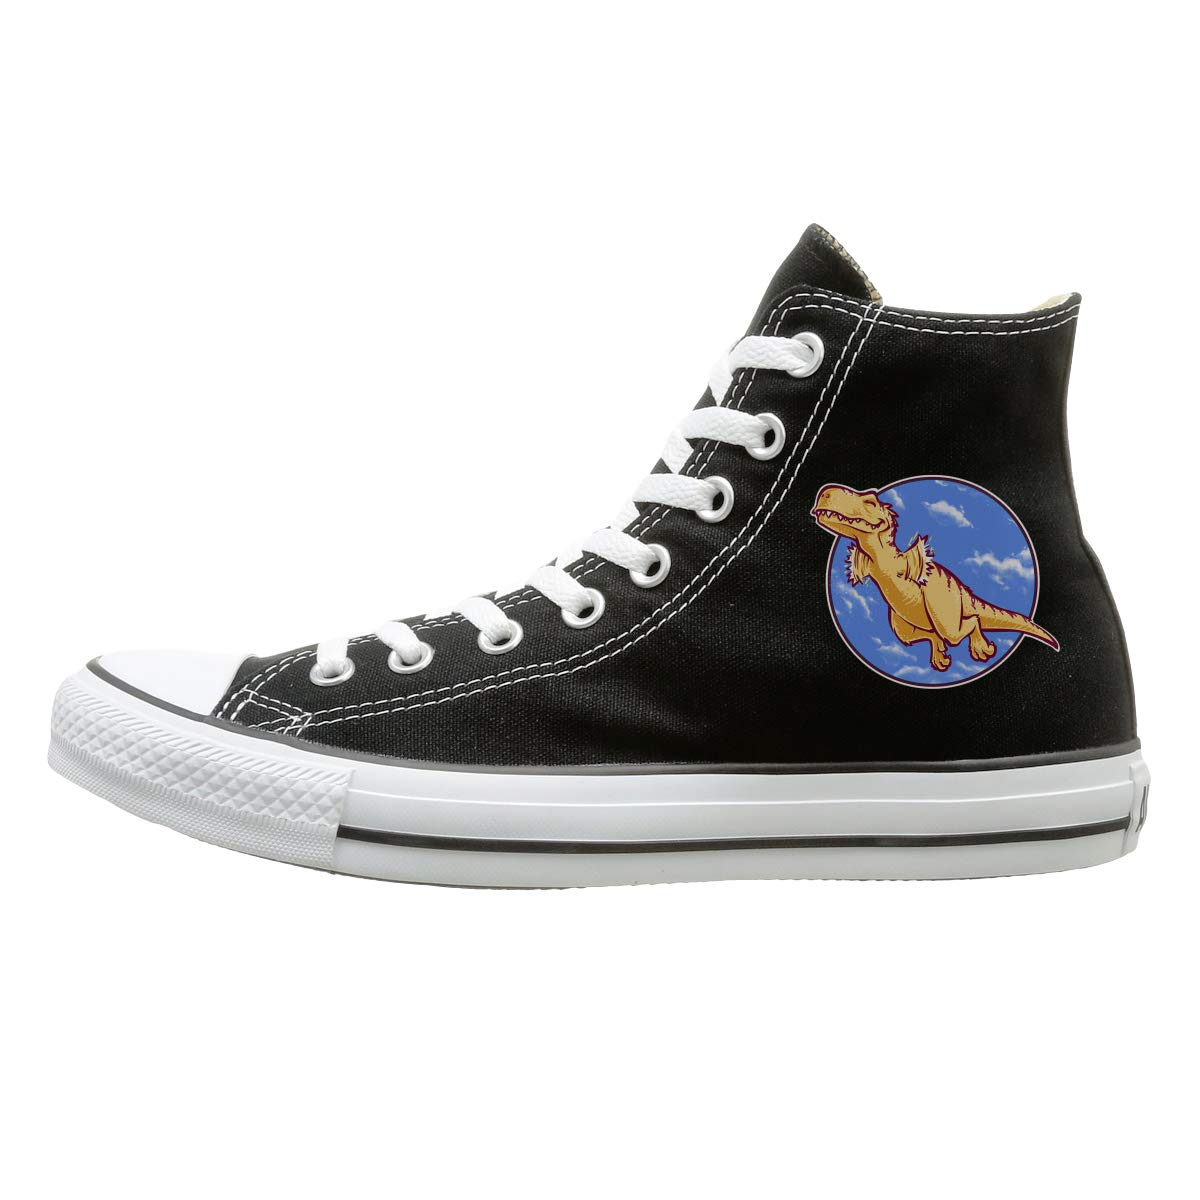 FOOOKL I Believe I Can Fly Dinosaur Canvas Shoes High Top Design Black Sneakers Unisex Style